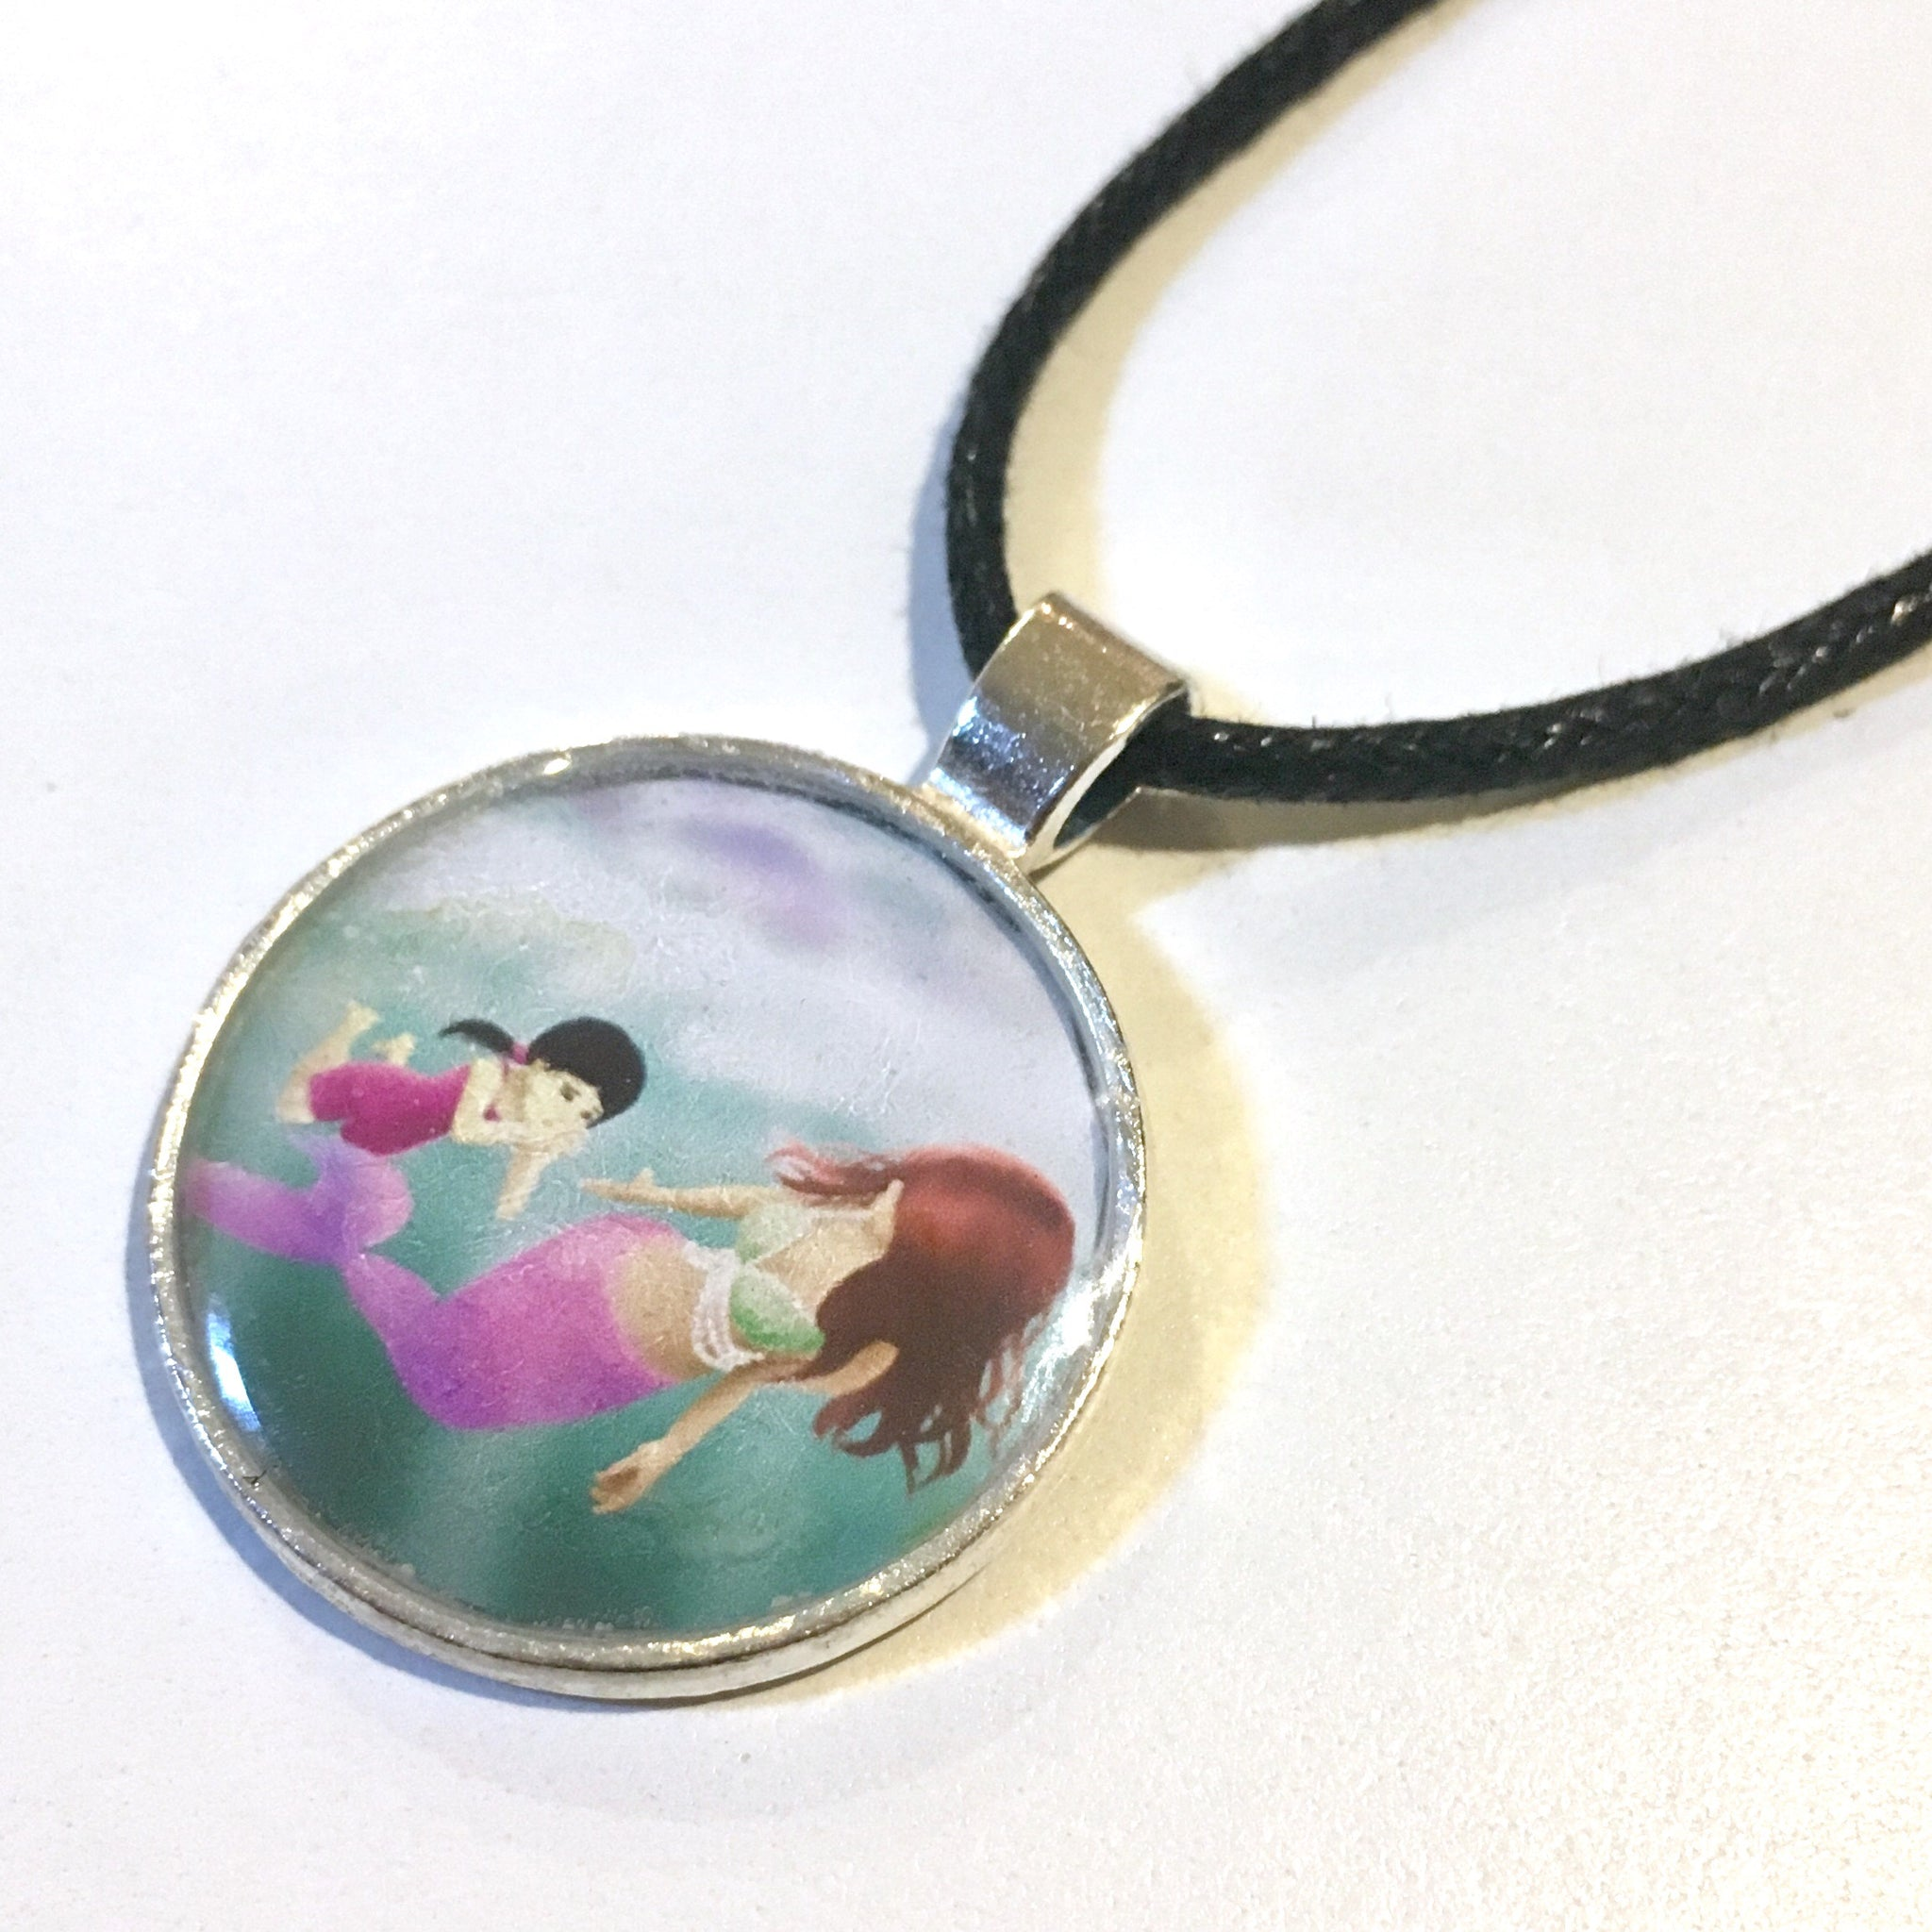 Swimming Lesson 25 mm/1 inch Art Pendant - Morgan Cerese Art